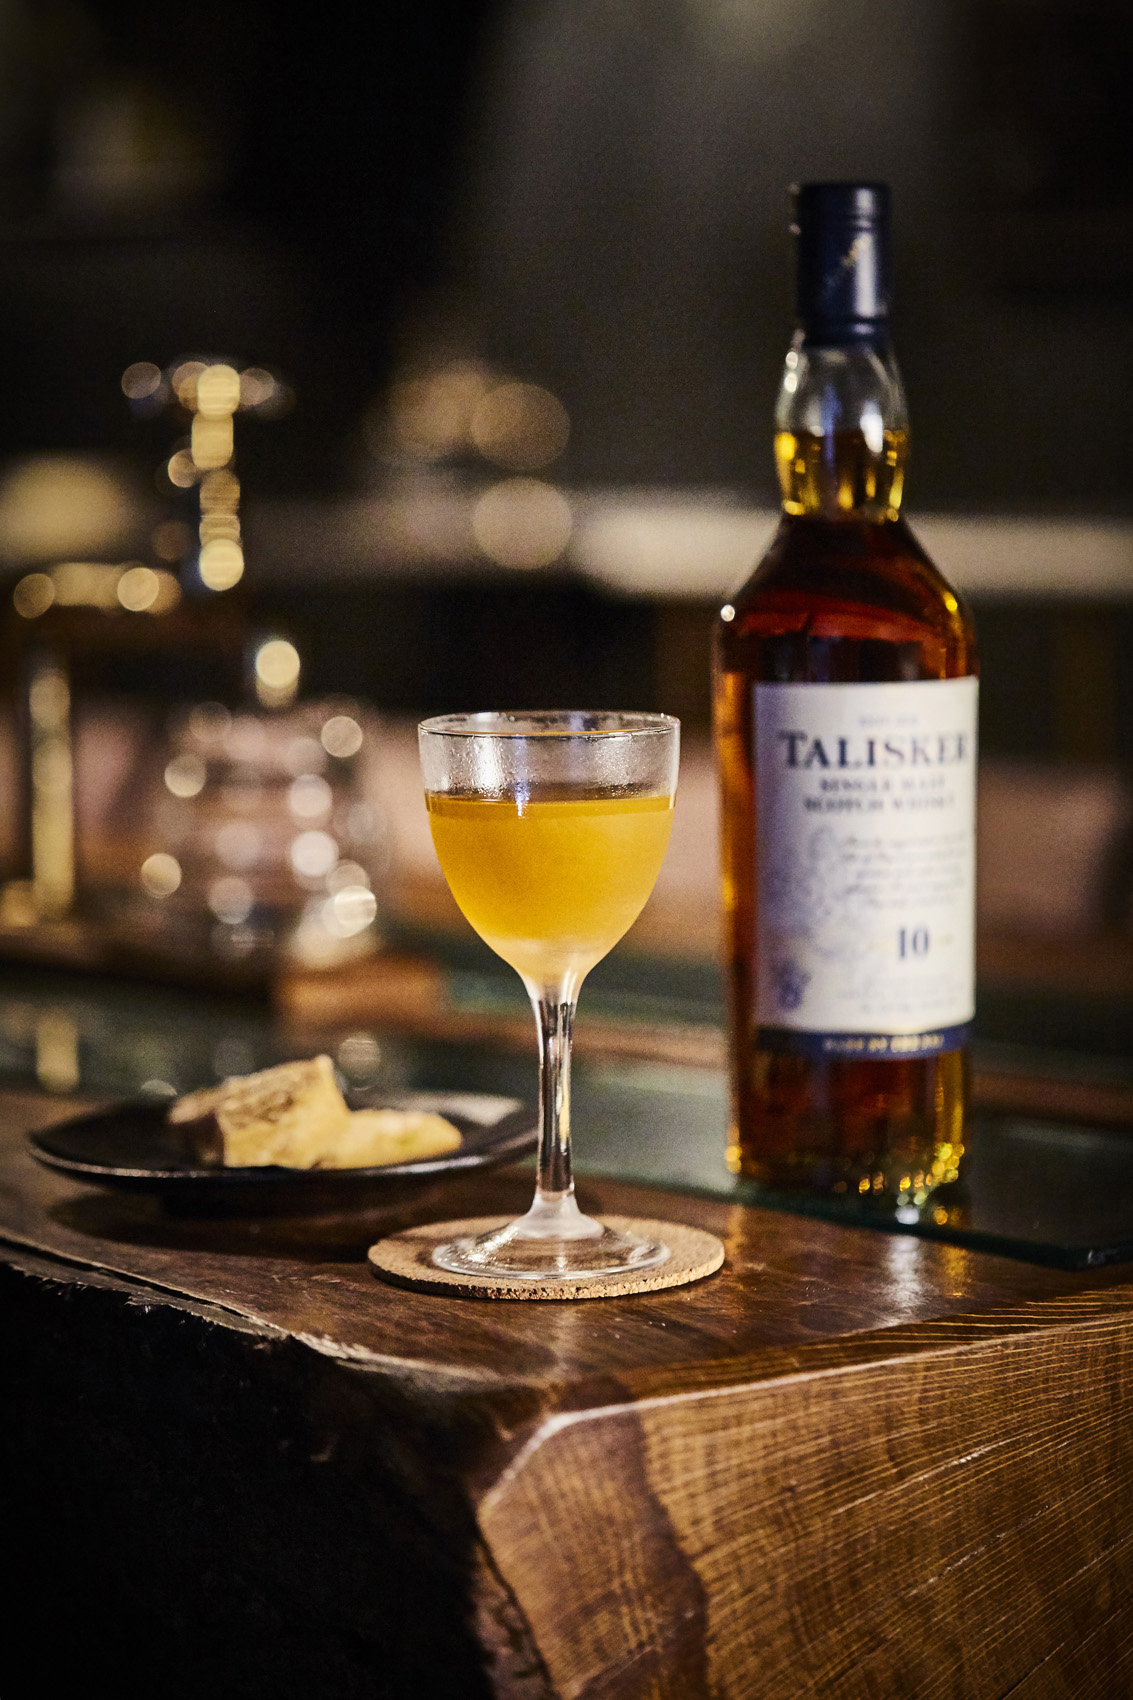 SteveRyan_Photographer_Drink_Cocktails_Talisker_11